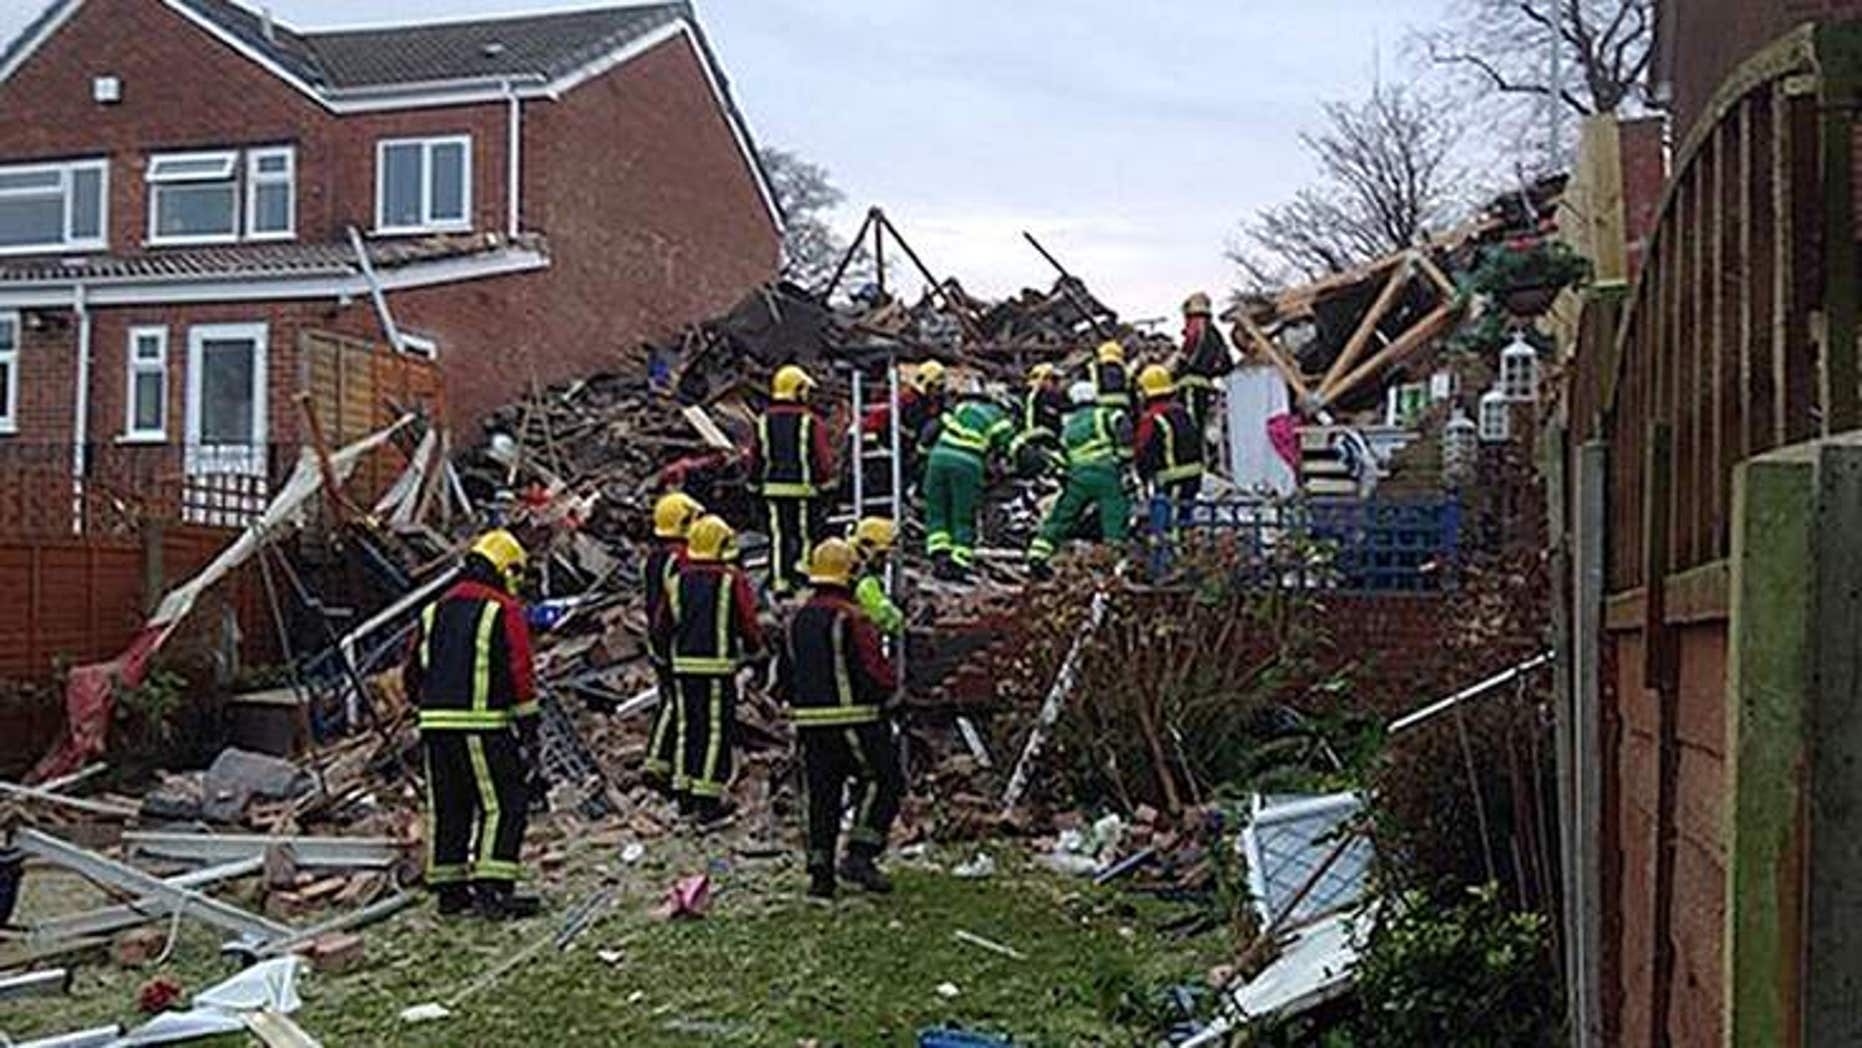 A woman rescued after a suspected gas blast destroyed her home was saved by her washing machine. (Sky News)